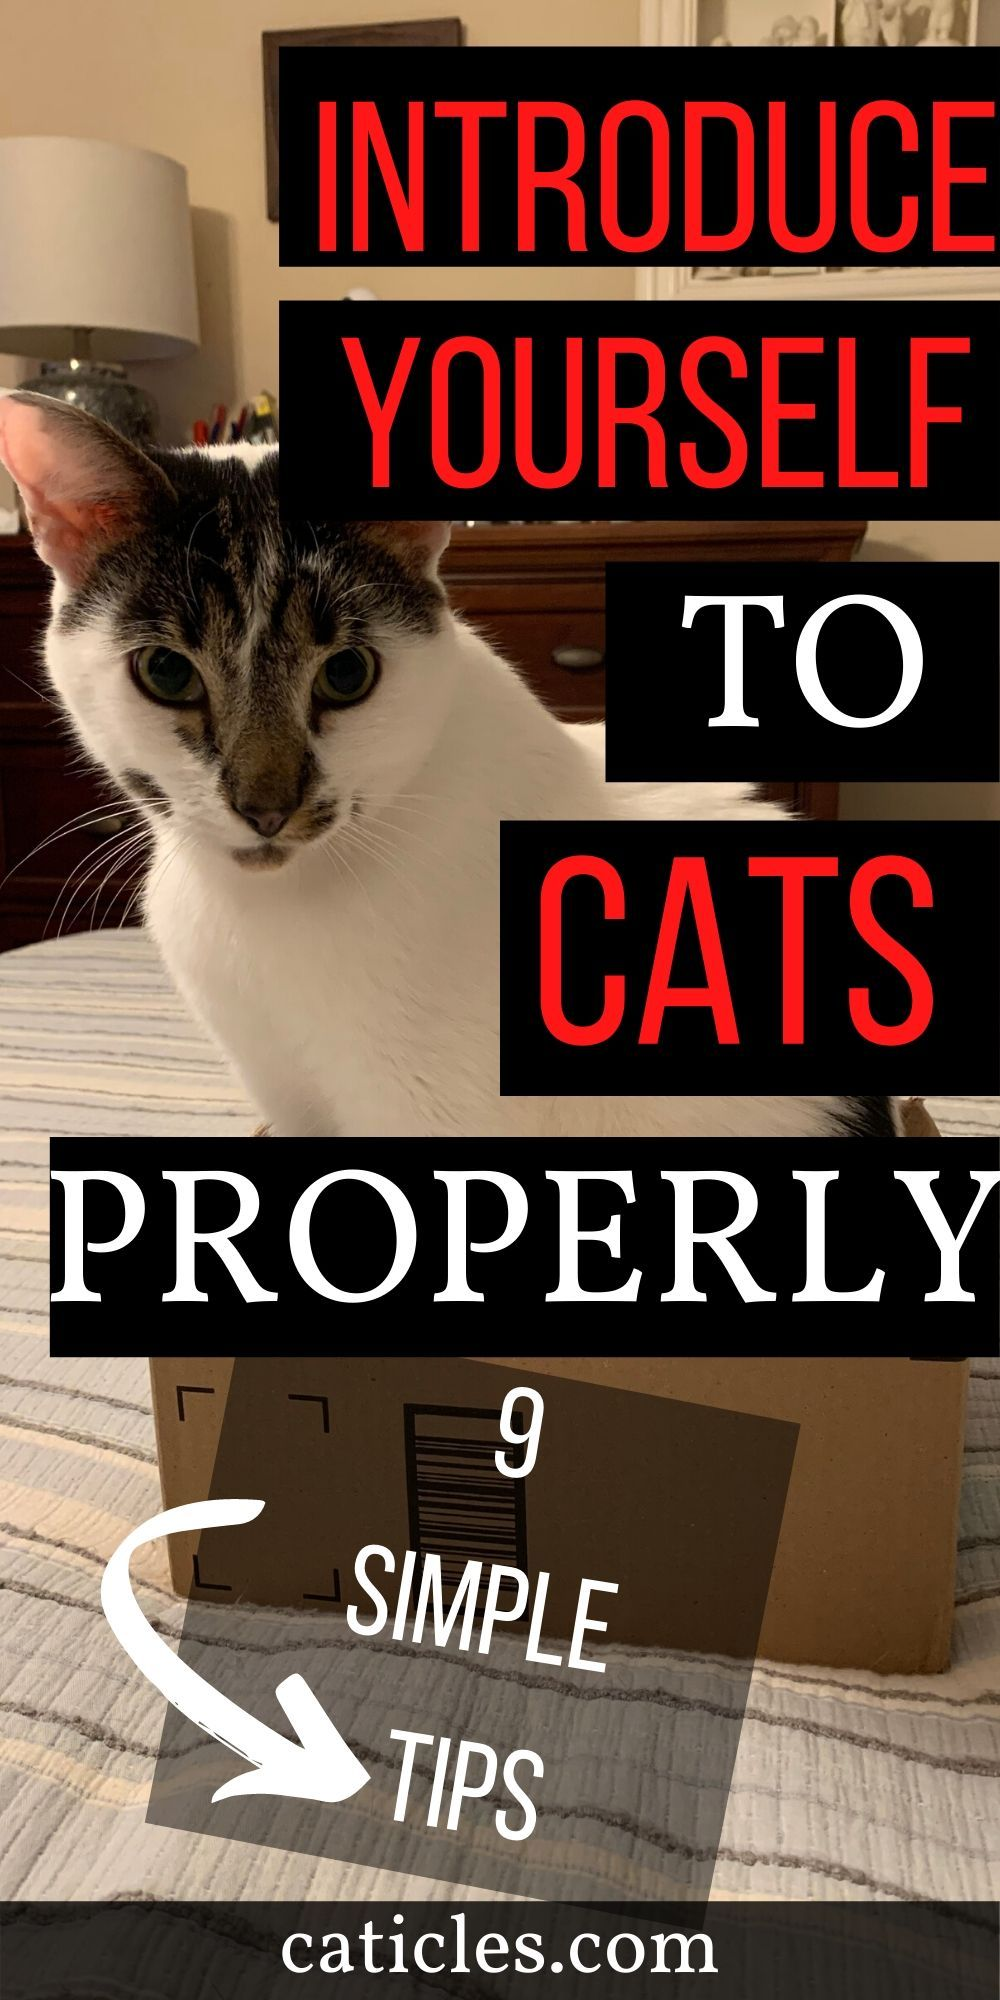 9 tips to introduce yourself to a cat the right way in